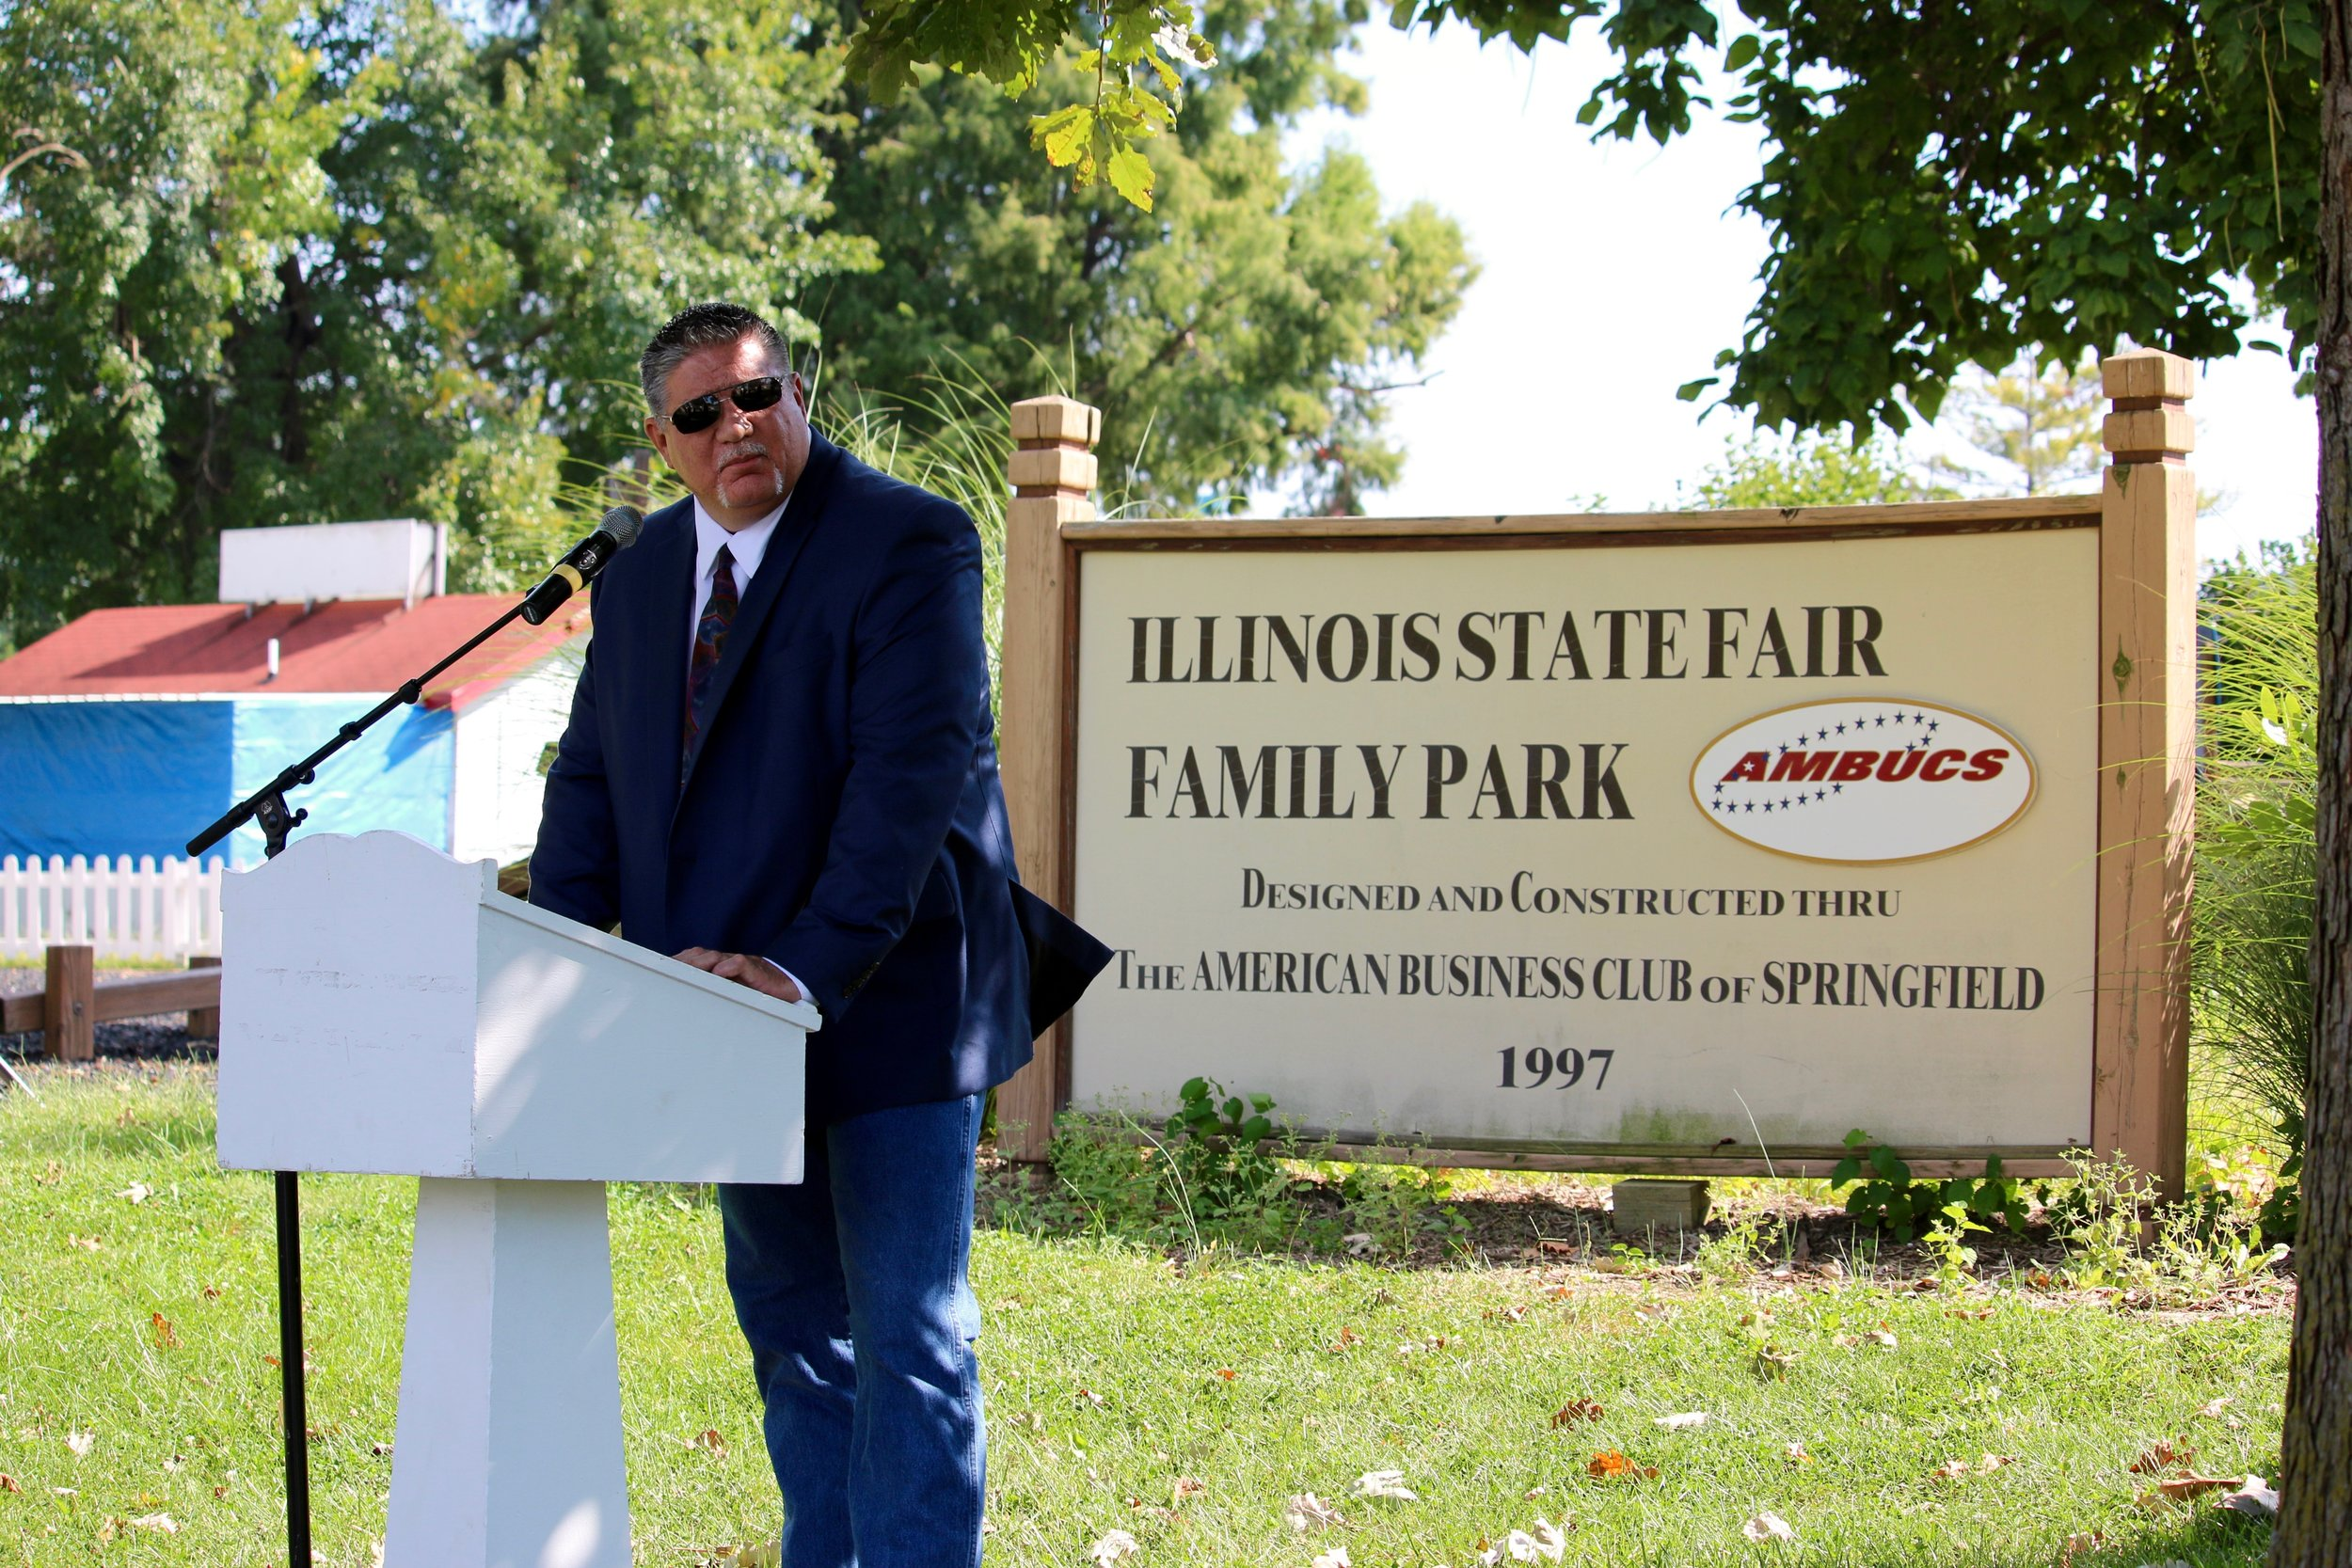 State Fair Manager, Kevin Gordon, gives remarks and thanks to local charities